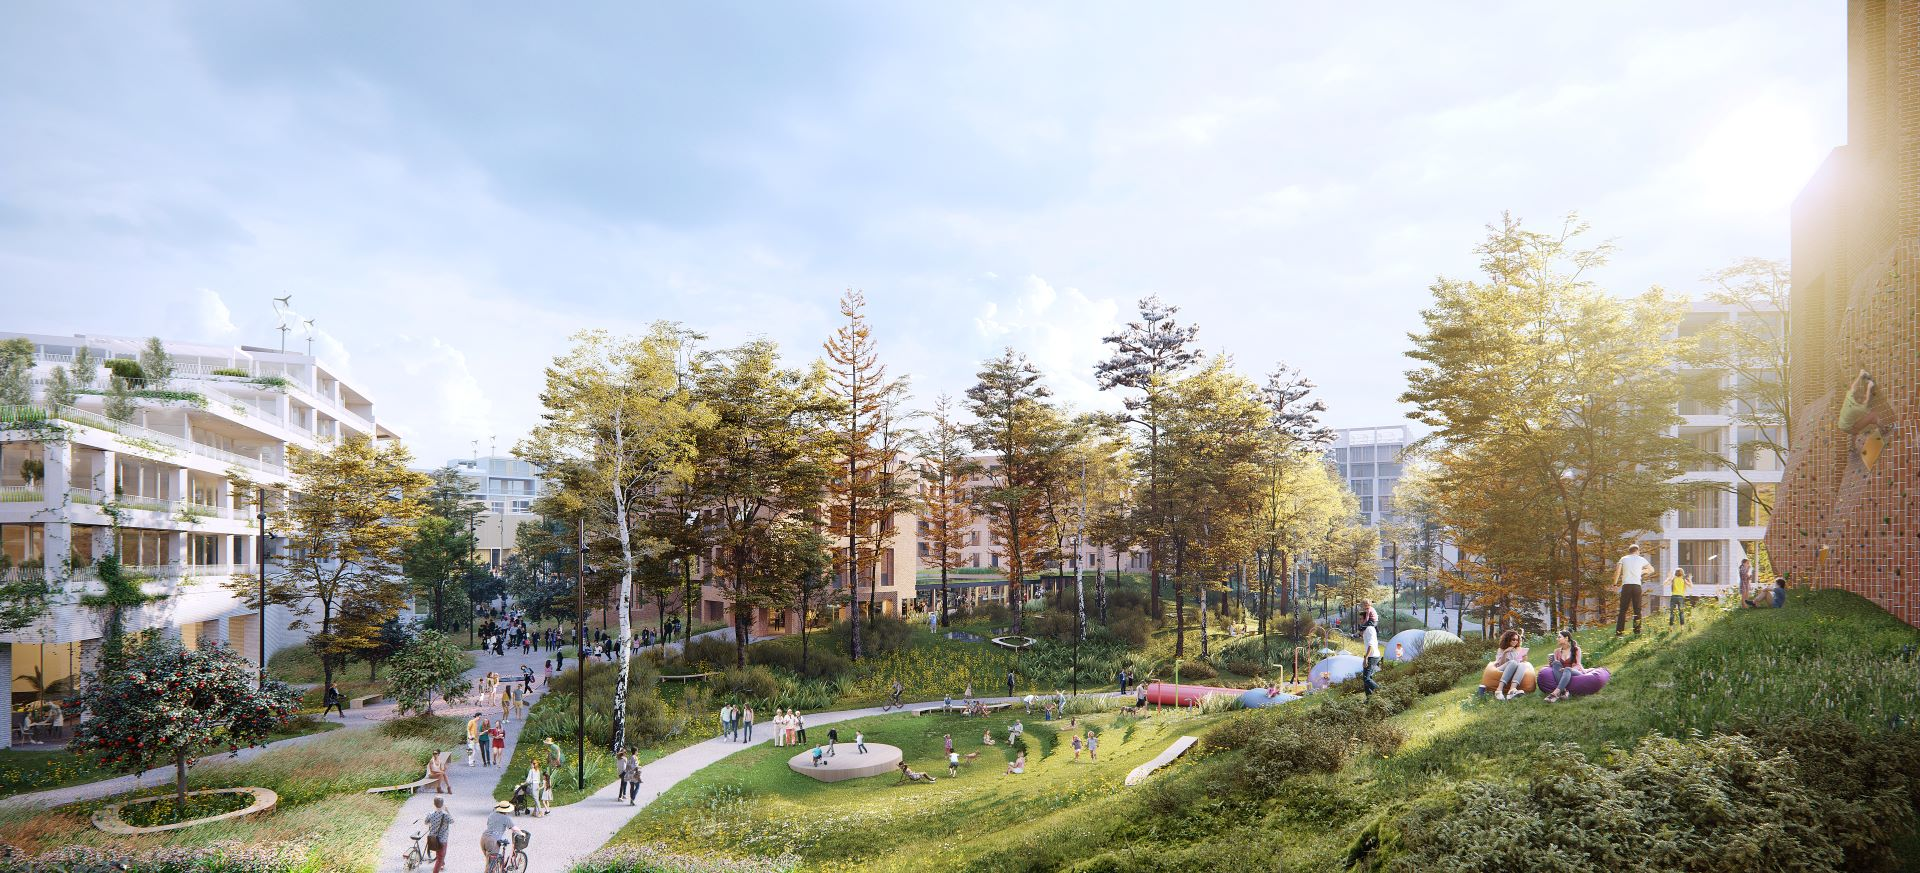 In the centre of Nowy Wełnowiec will be a 4-ha park. Over 4000 trees will be planted in the scheme.